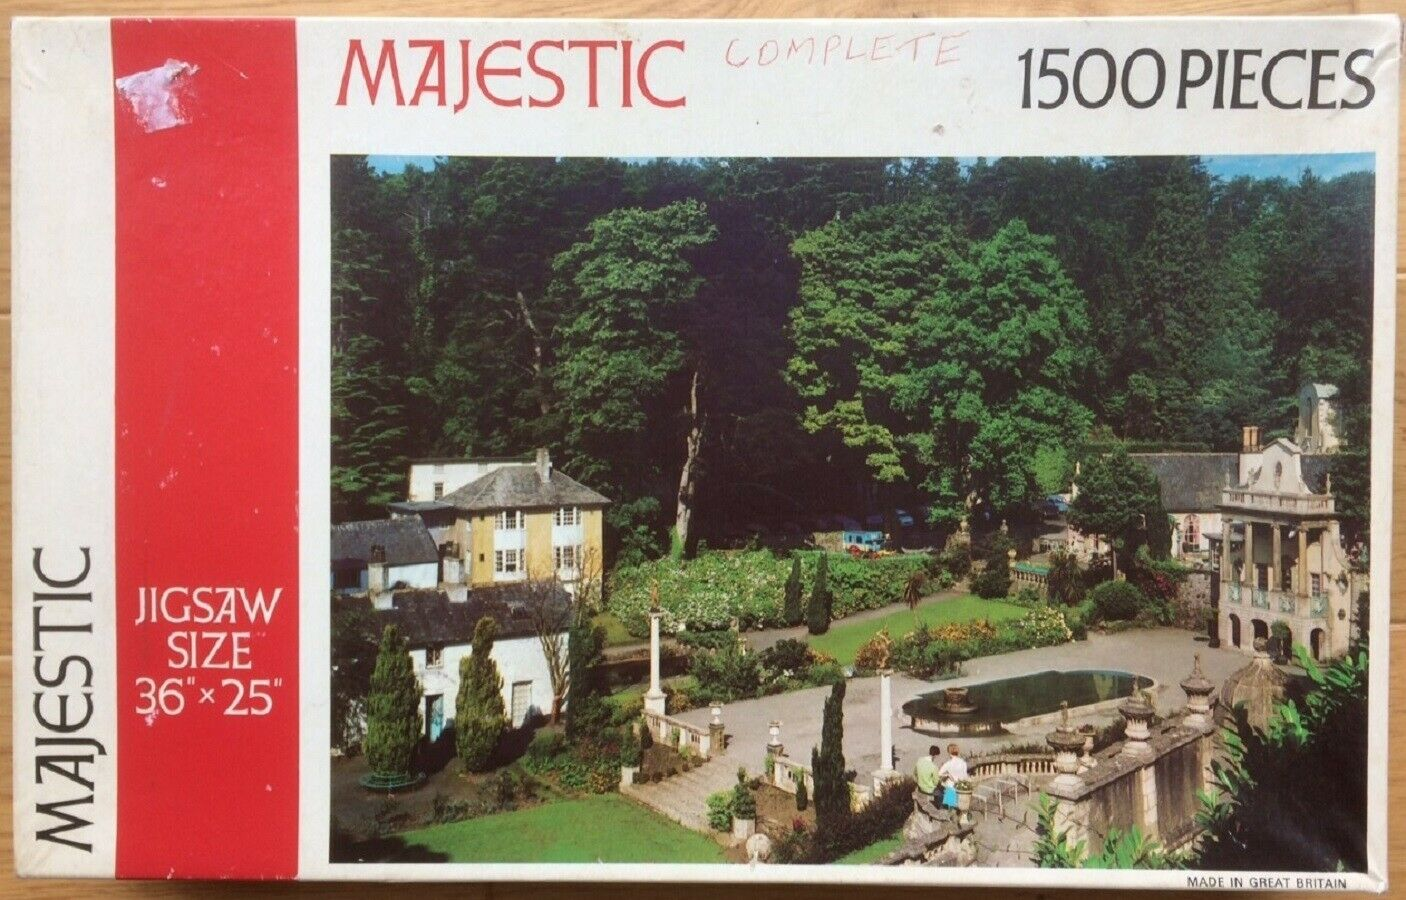 Portmeirion (The Prisoner) 1950s 60s jigsaw Complete Majestic 1500 pieces